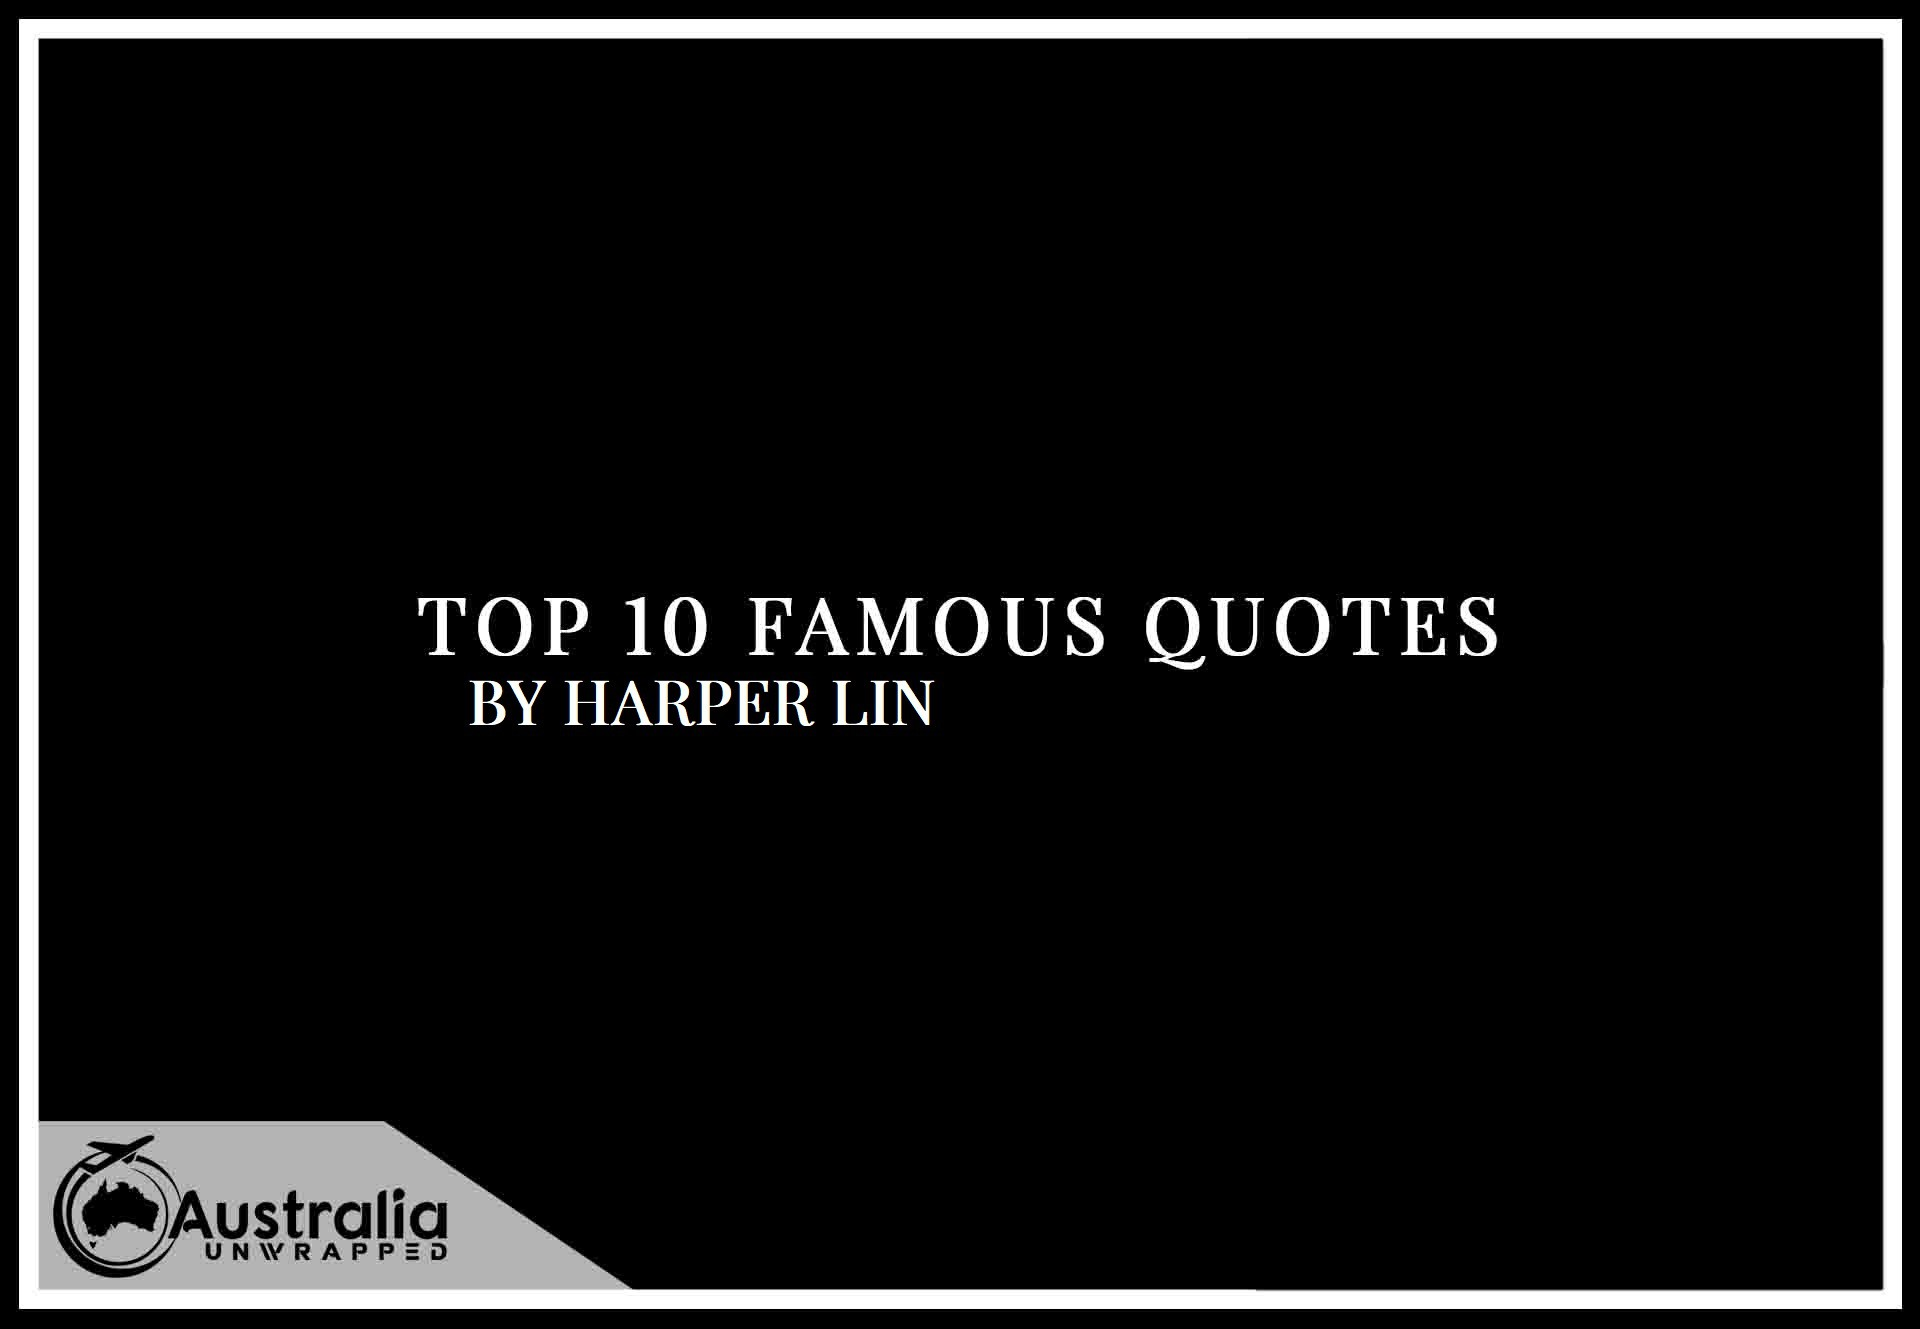 Top 10 Famous Quotes by Author Harper Lin